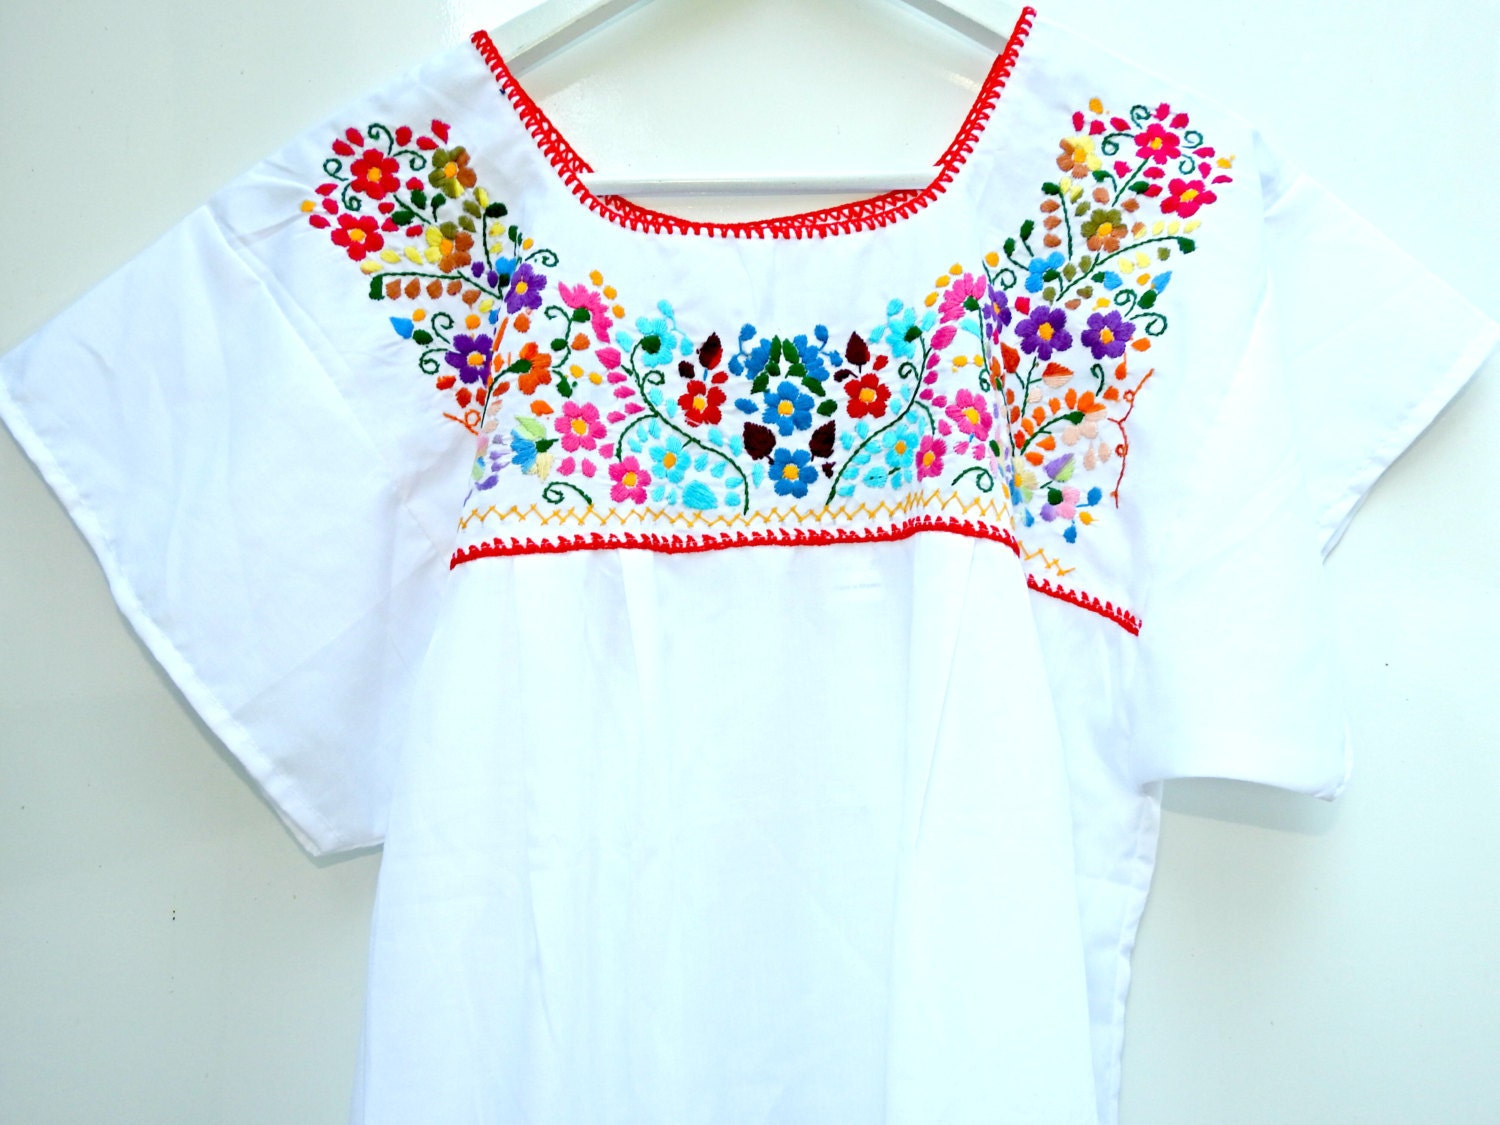 Embroidered puebla dress, white and with lace, for a unique boho style!